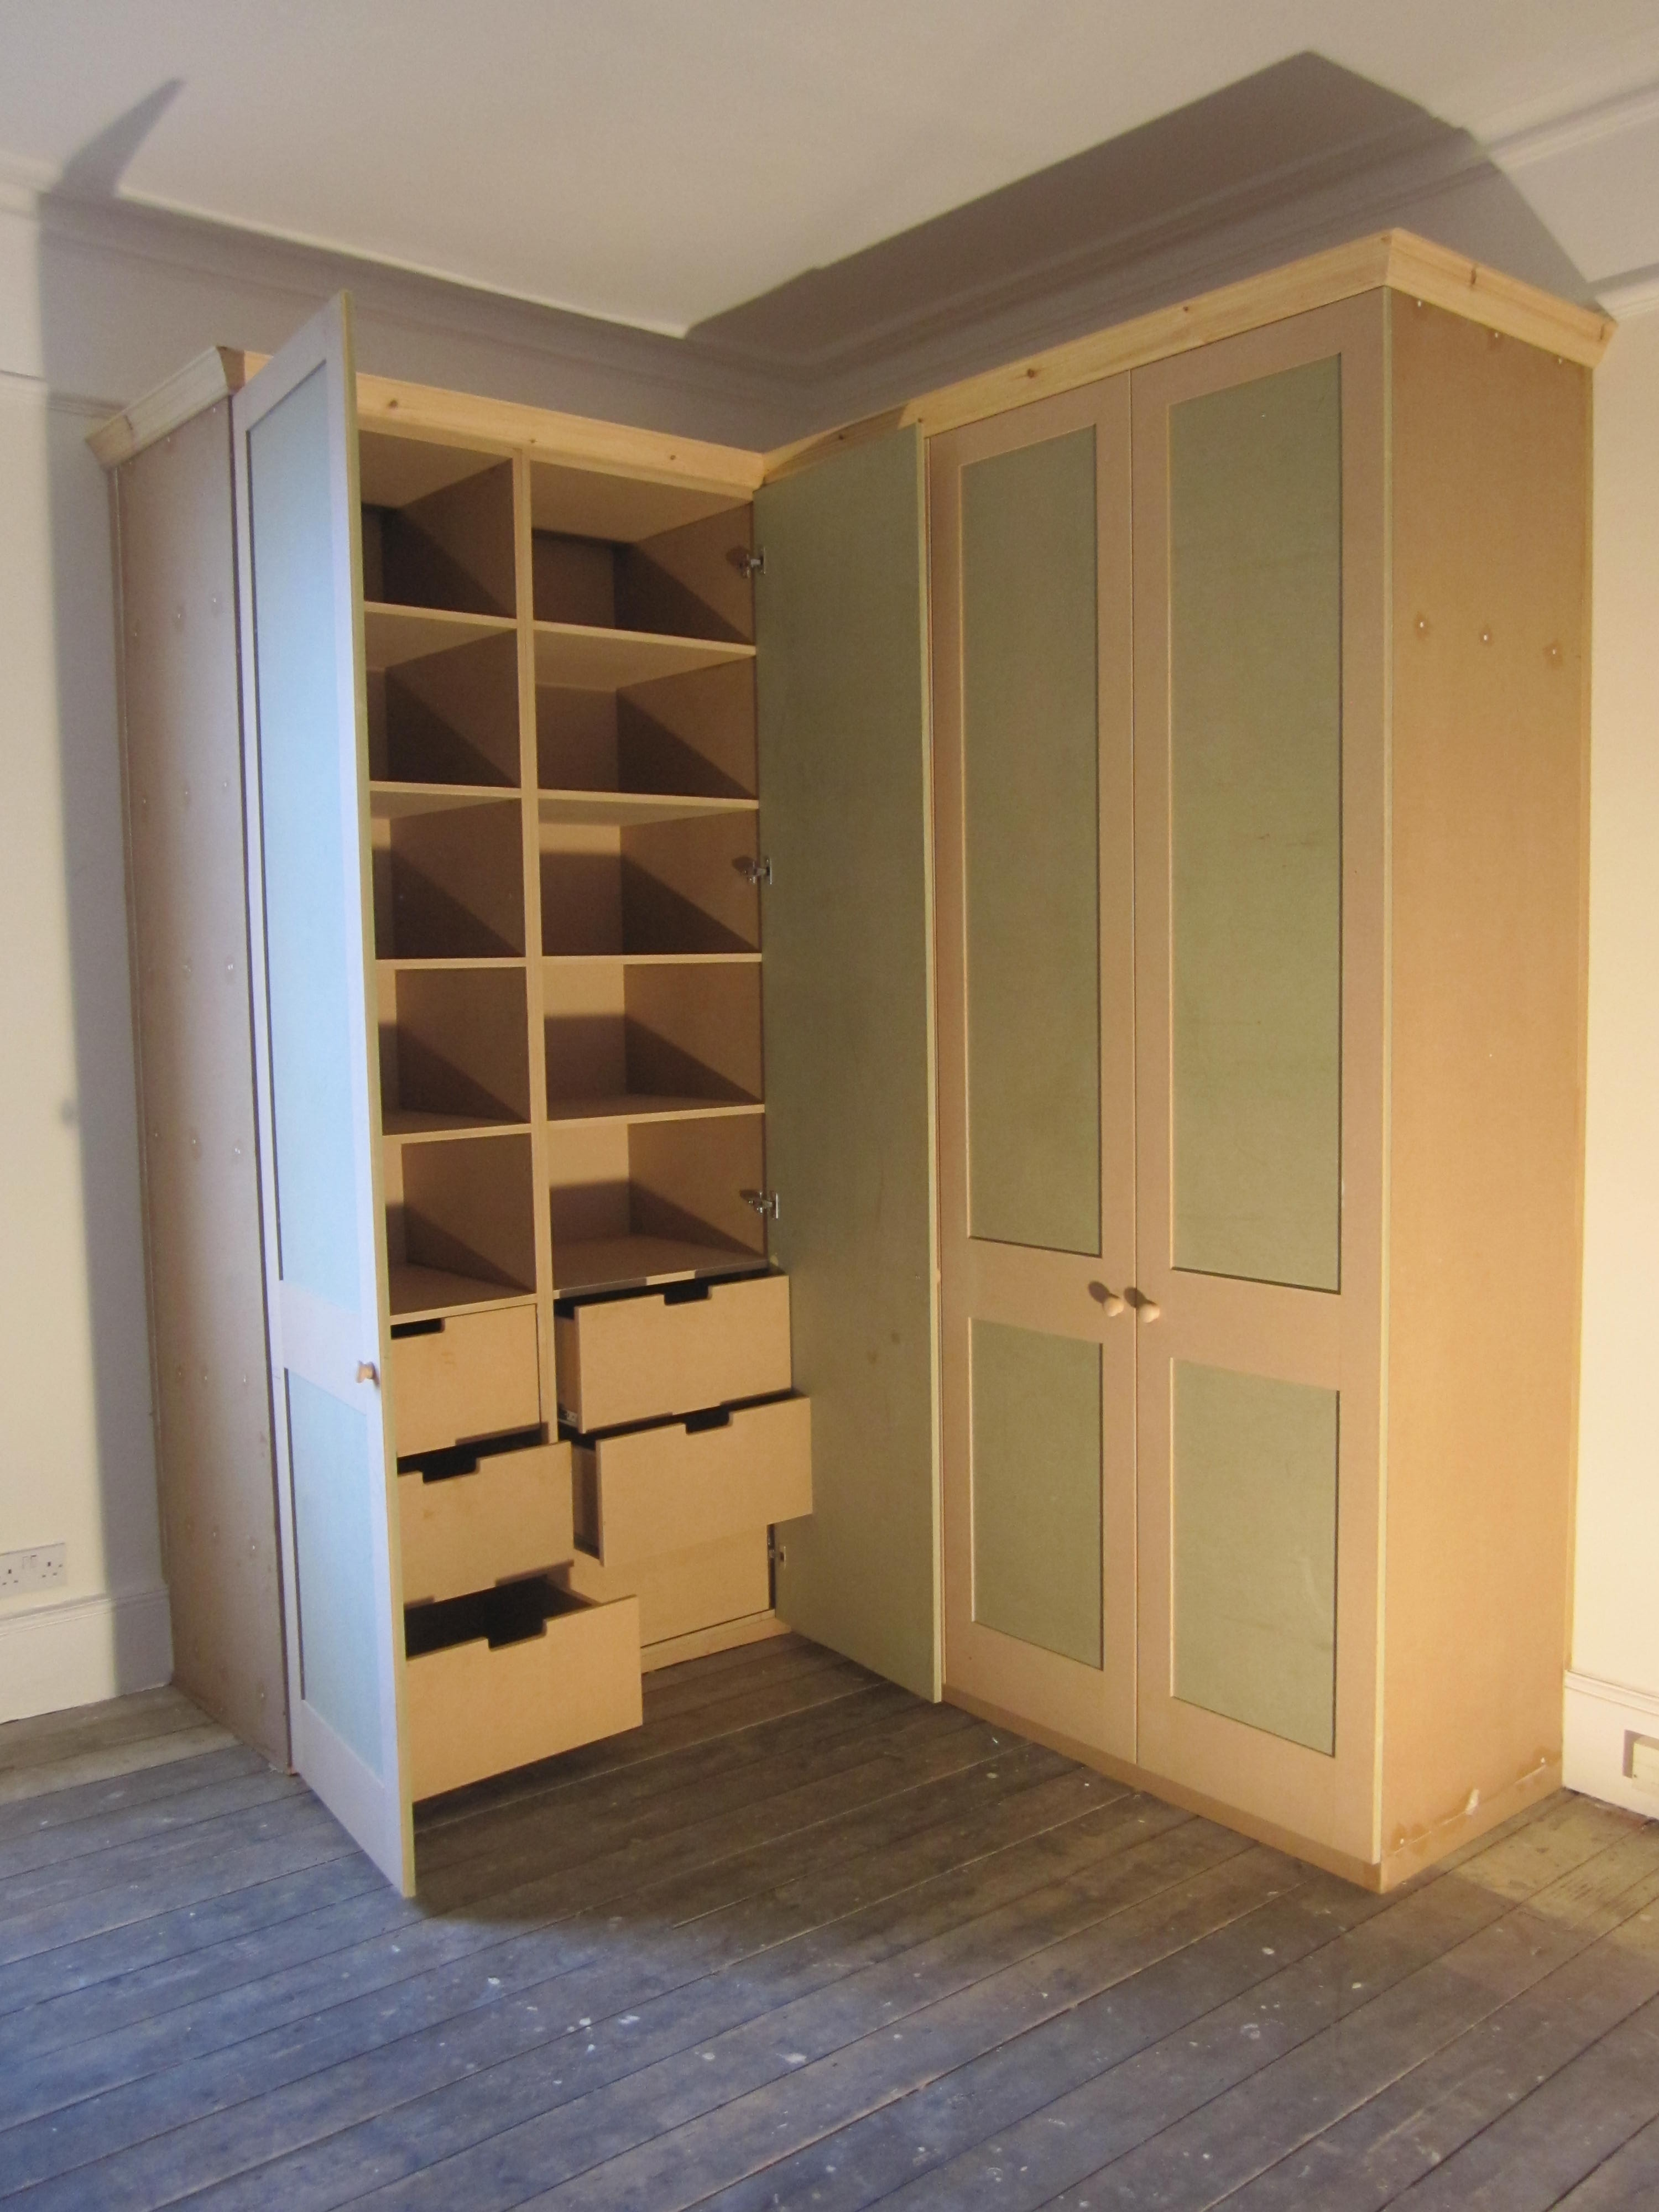 For Idea Of Drawer Shape Only Closets Pinterest Drawers And Intended For Wardrobes With Shelves (Image 8 of 15)